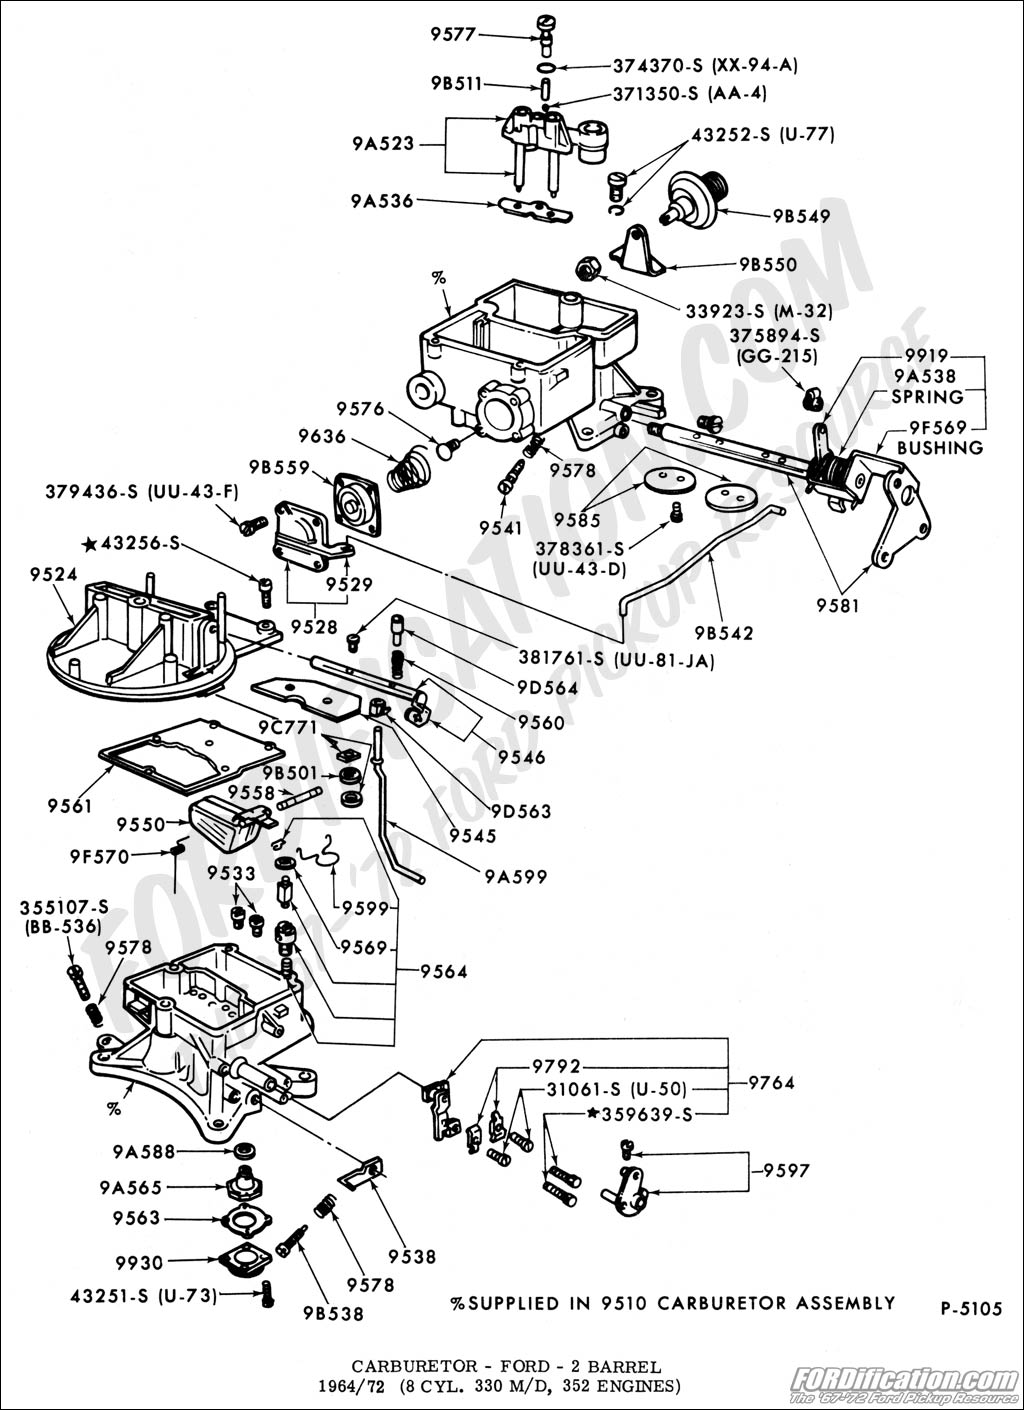 Dec Converters For20700p Catalytic Converter And Pipe Assembly together with Schematics e besides Schematics e likewise Chevrolet Chevy Van 7 4 1986 Specs And Images also Sce Gaskets Part Number P91663. on ford 360 engine weight